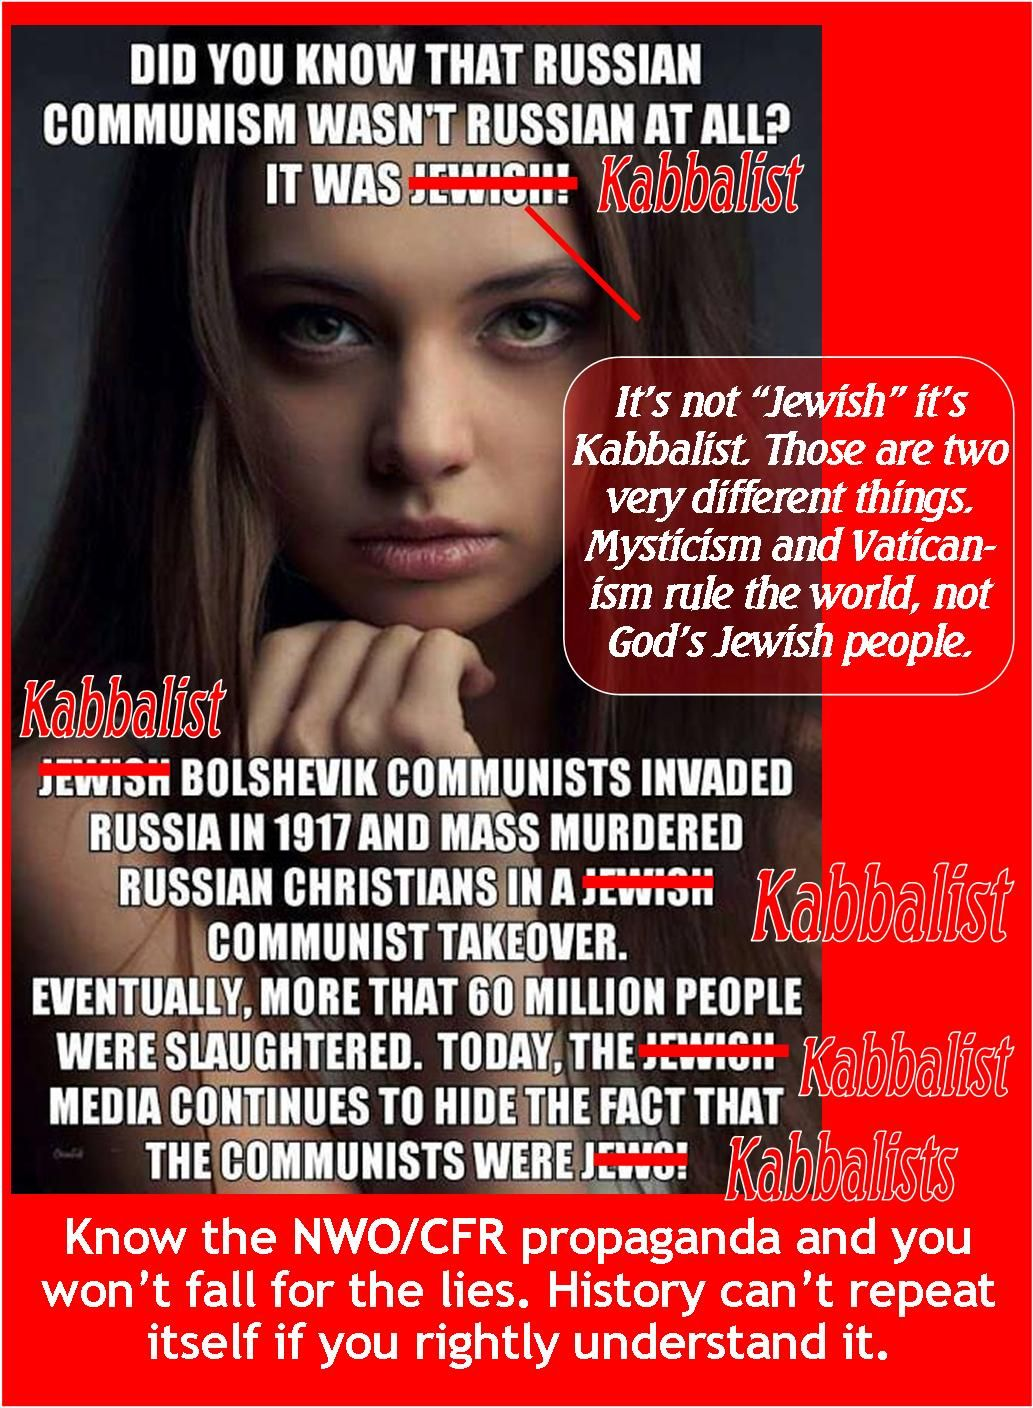 #Kabbalists are not the same as #Jewish. Learn #honest #history - please don't just copy and paste the #NWO lies.   https://plus.google.com/116627242552061893187/posts/8xFF6YmTT52?sfc=true